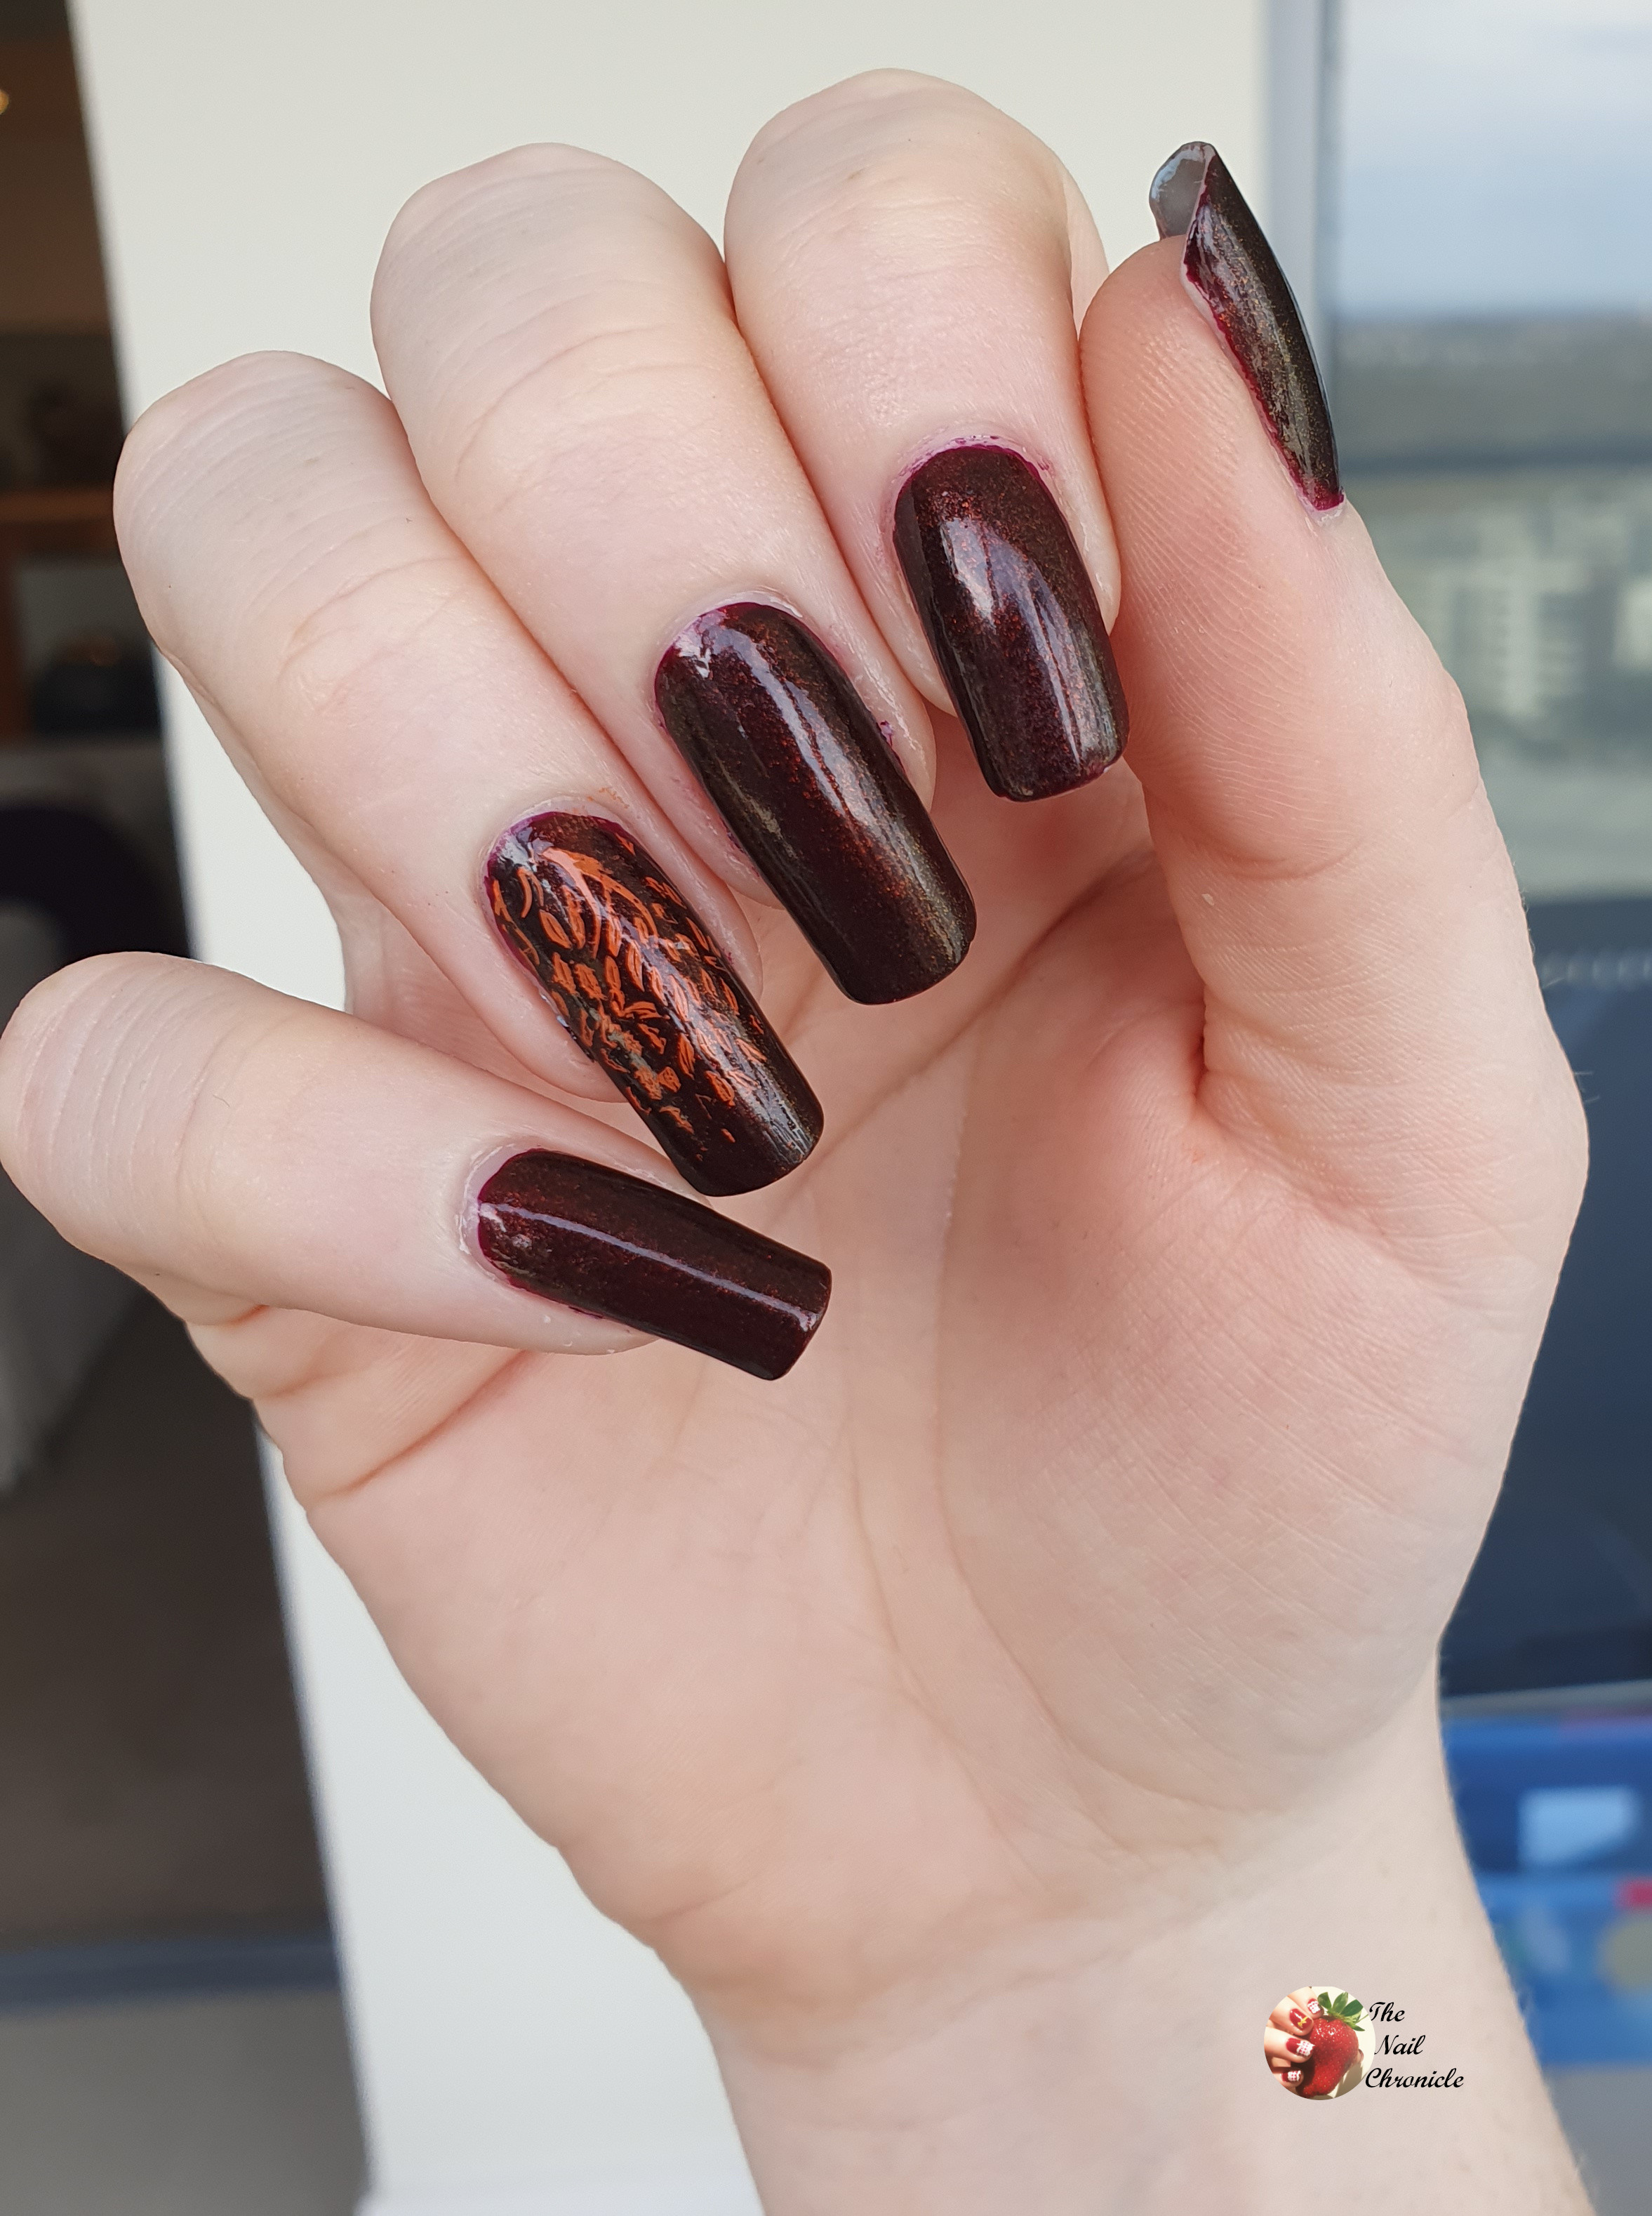 Fall Nail Art Design Ideas For Beginners The Nail Chronicle